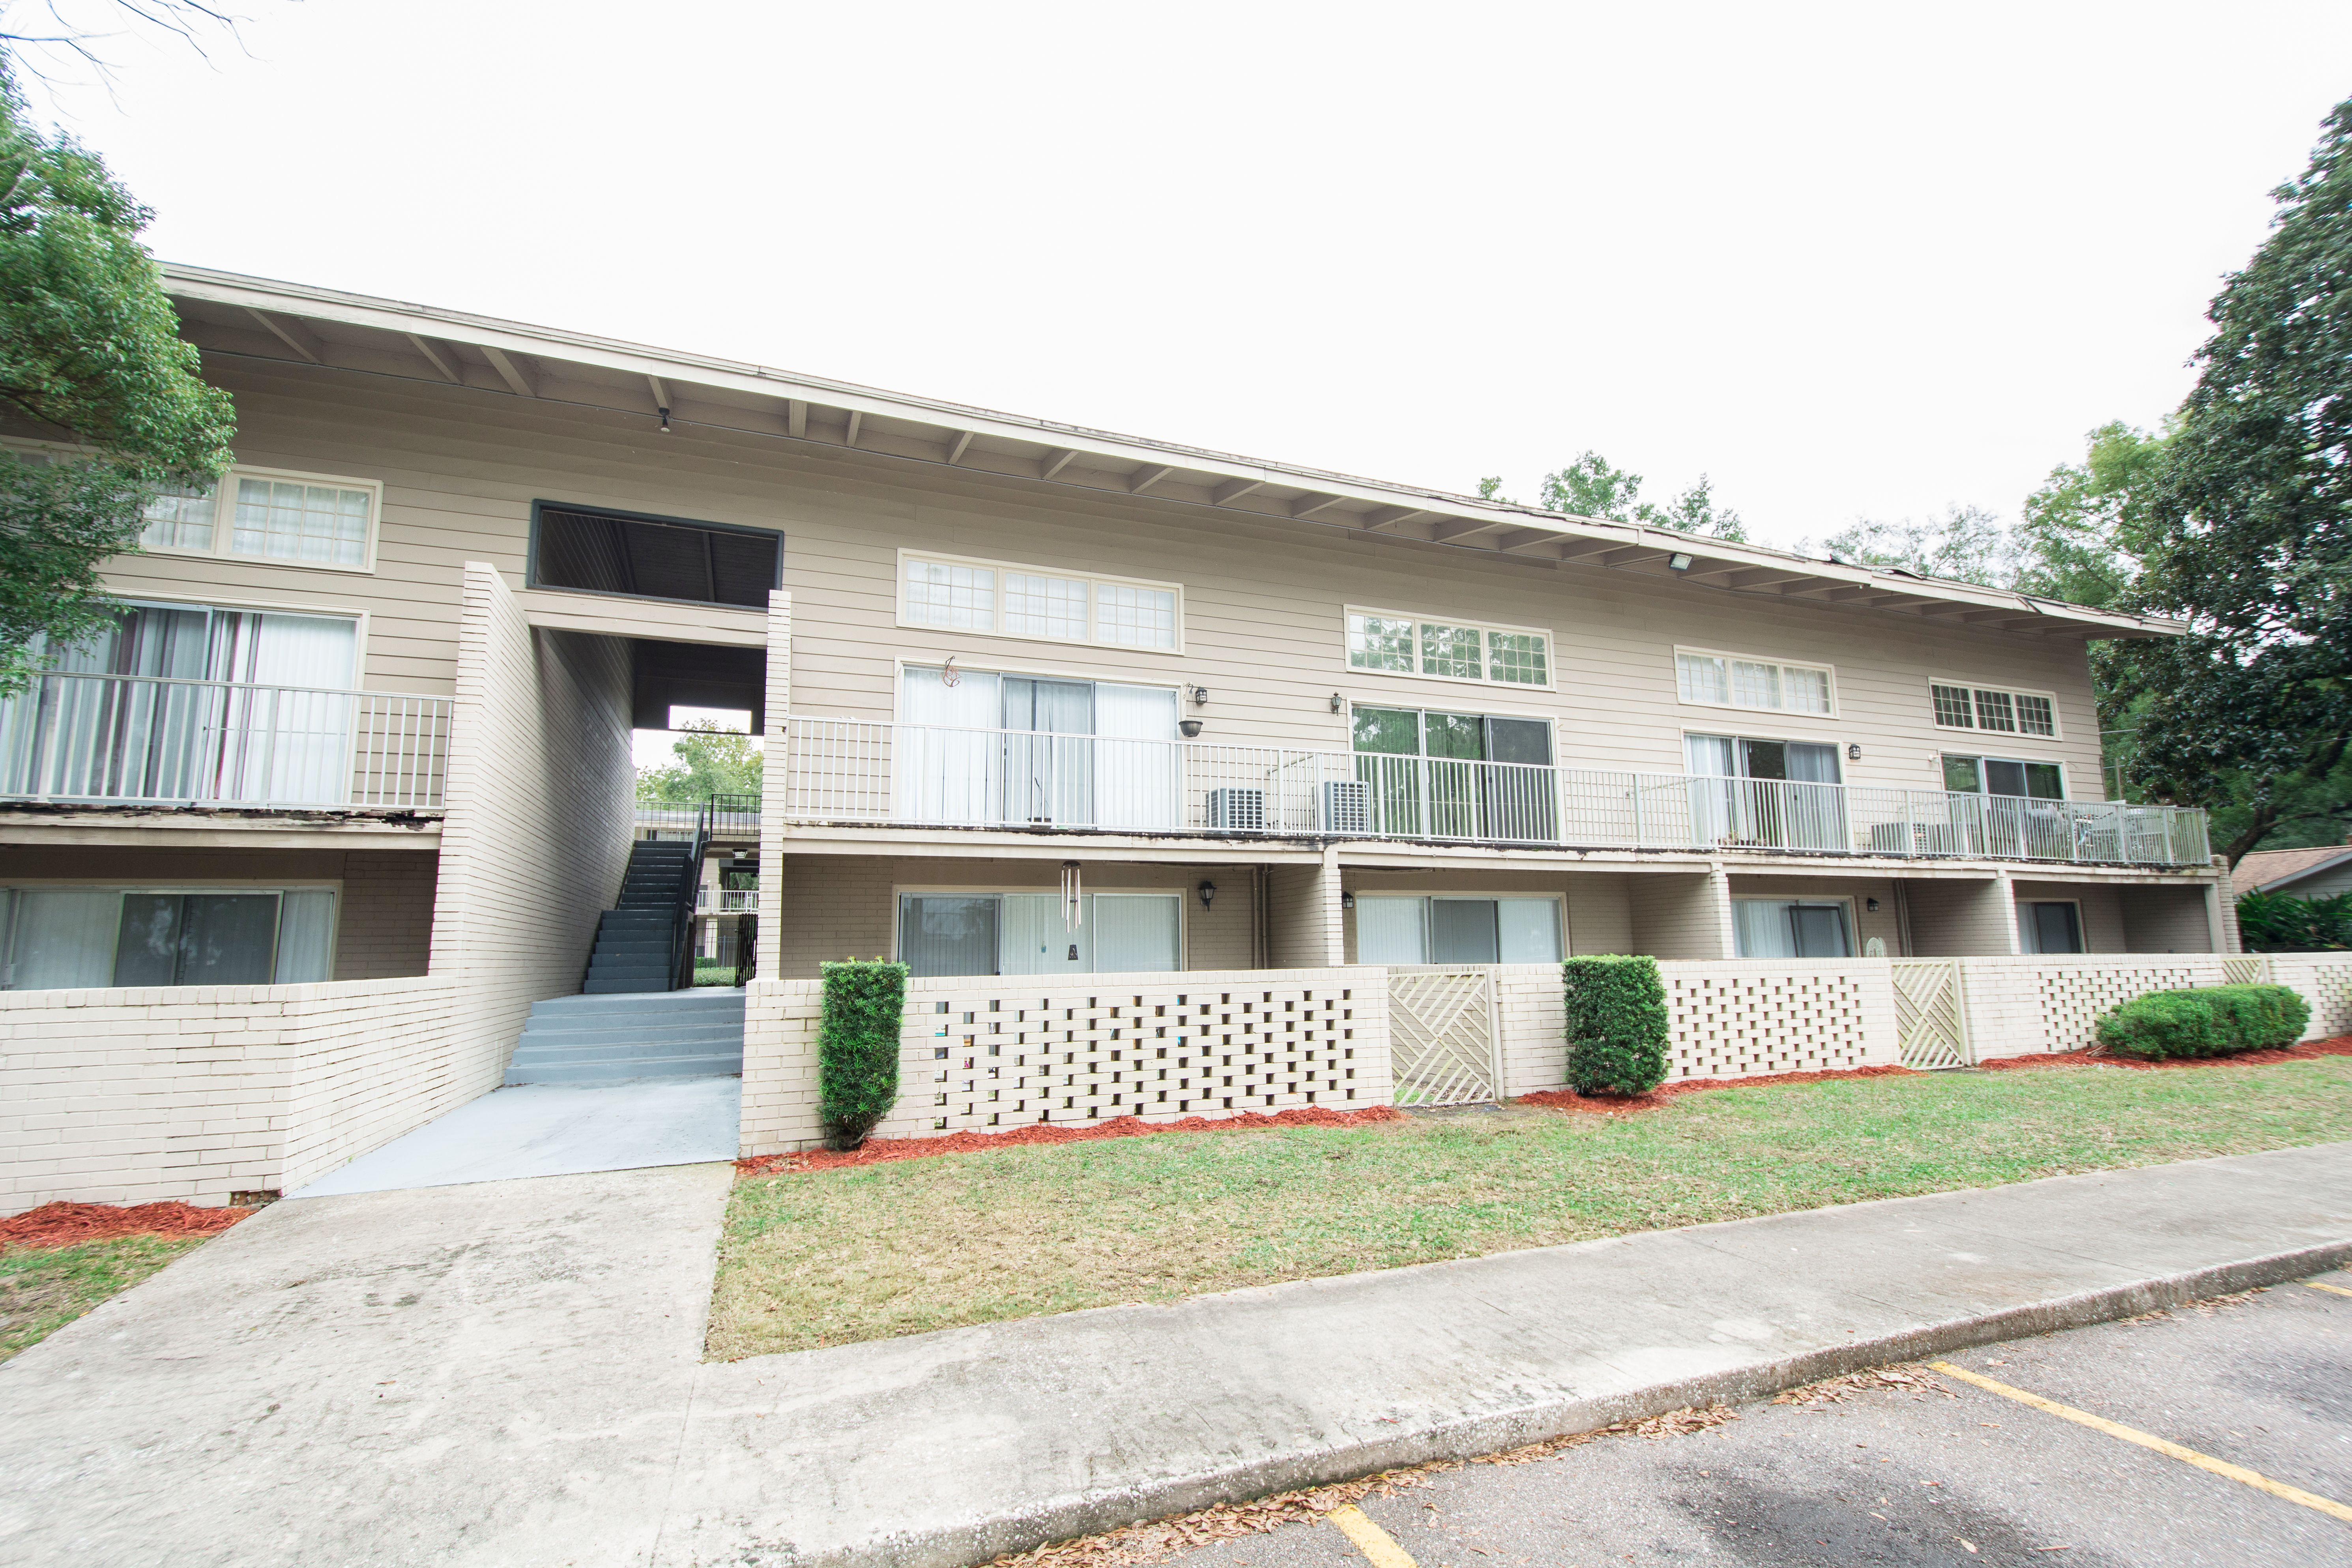 Chelsea Courtyards Apartments Jacksonville Florida Courtyard Apartments Screened In Patio Porch And Balcony